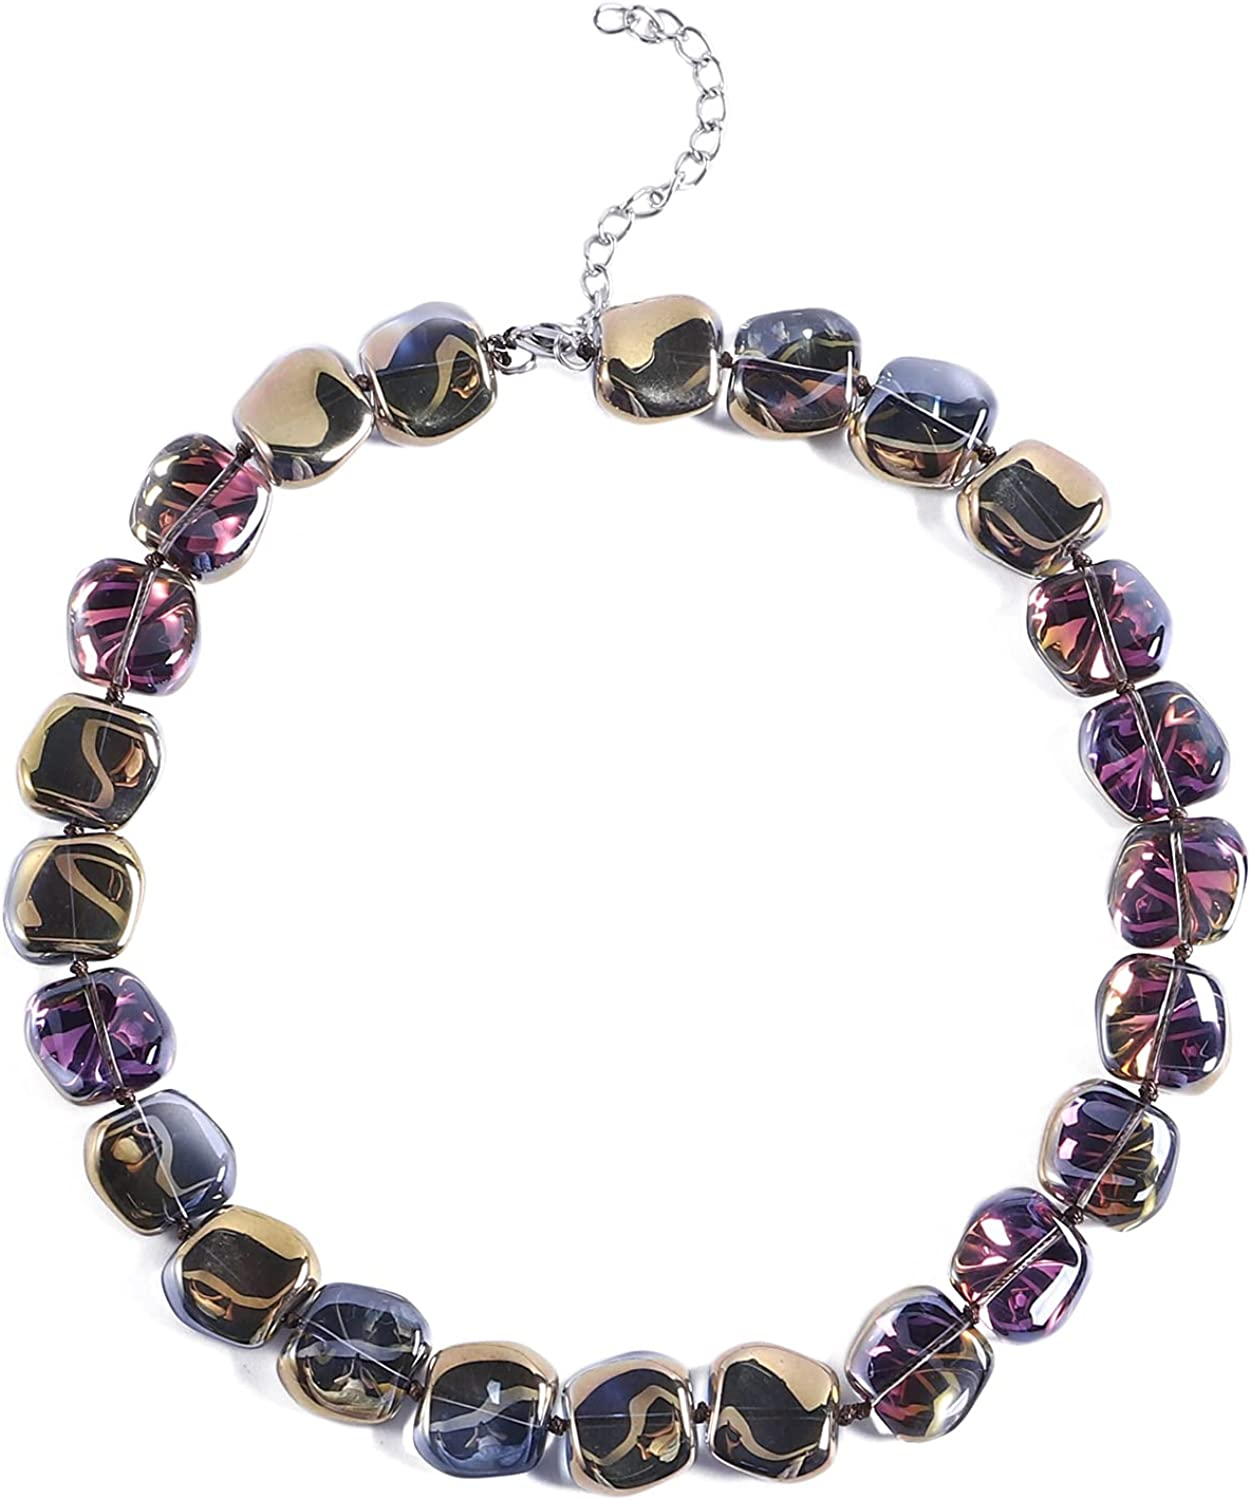 20.9inch Bib Necklace Crystal Big Bead Choker Statement Necklace Trendy Chunky Handmade Necklace for Women Girls